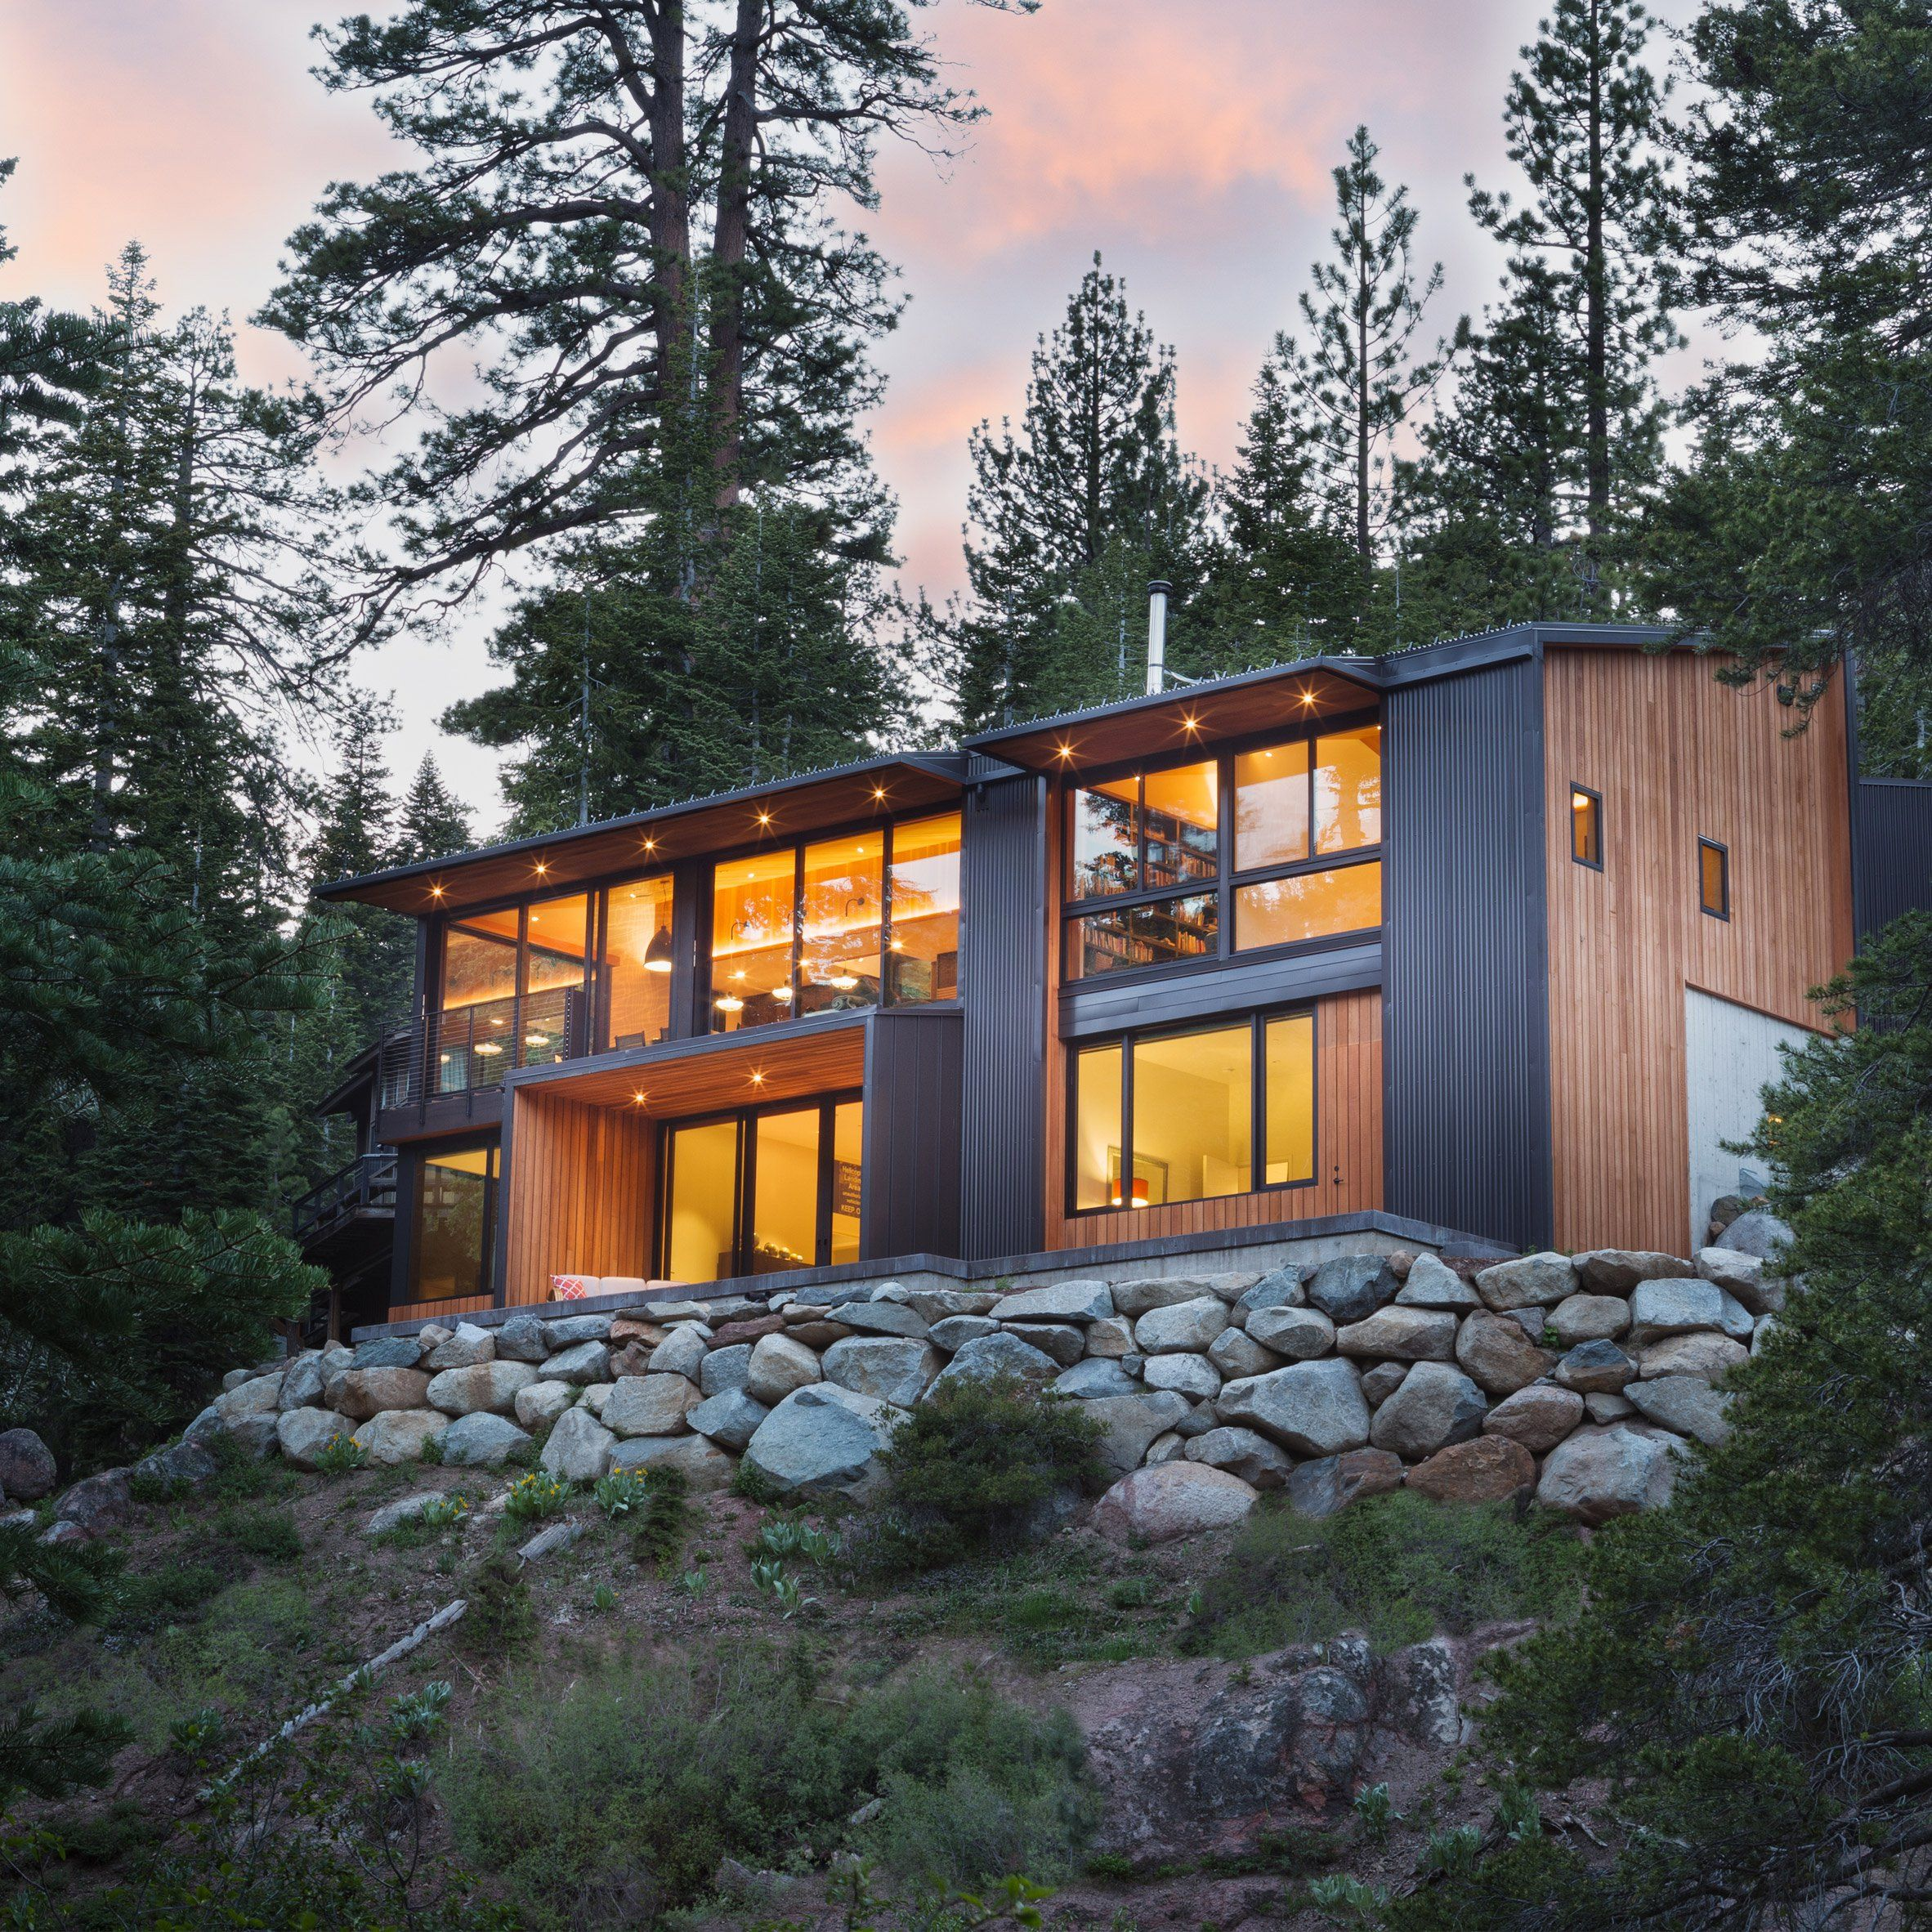 quick sierra cabins guide conference point tahoe s and pine sugar fir center a in camp the stanford blog willow white camps jeffrey to